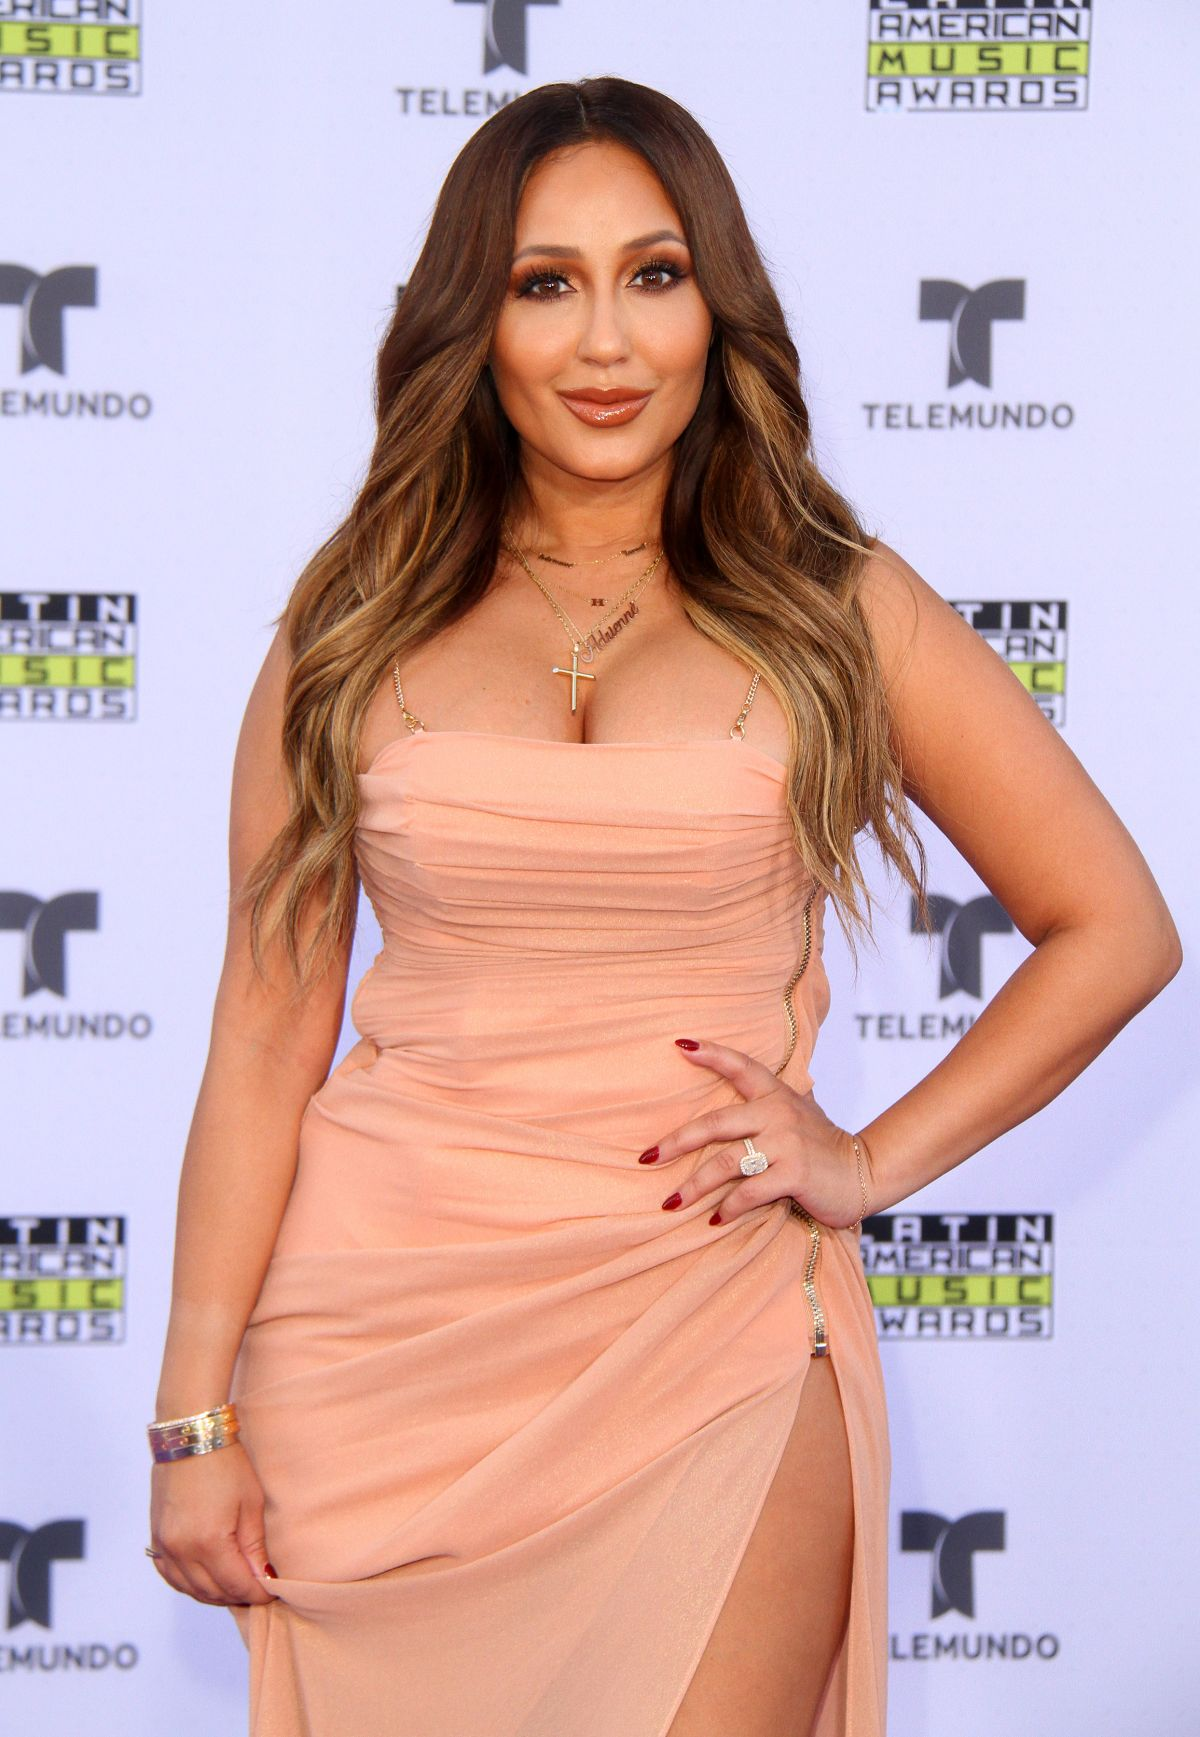 adrienne-bailon-at-2017-latin-american-music-awards-in-hollywood-10-26-2017-12.jpg